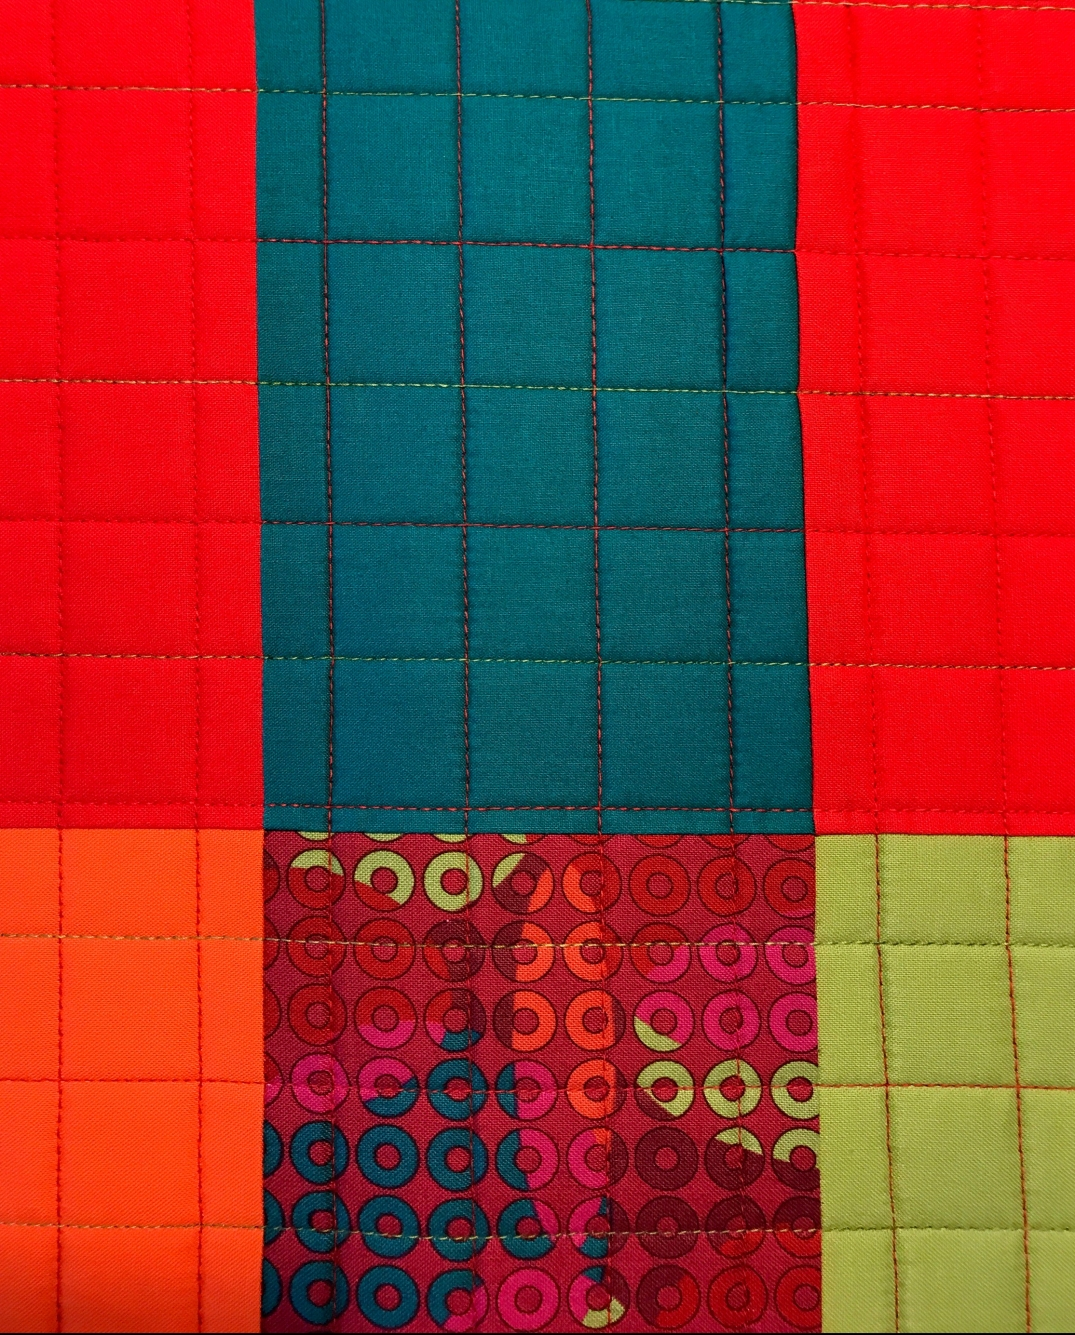 Squares with thread color change